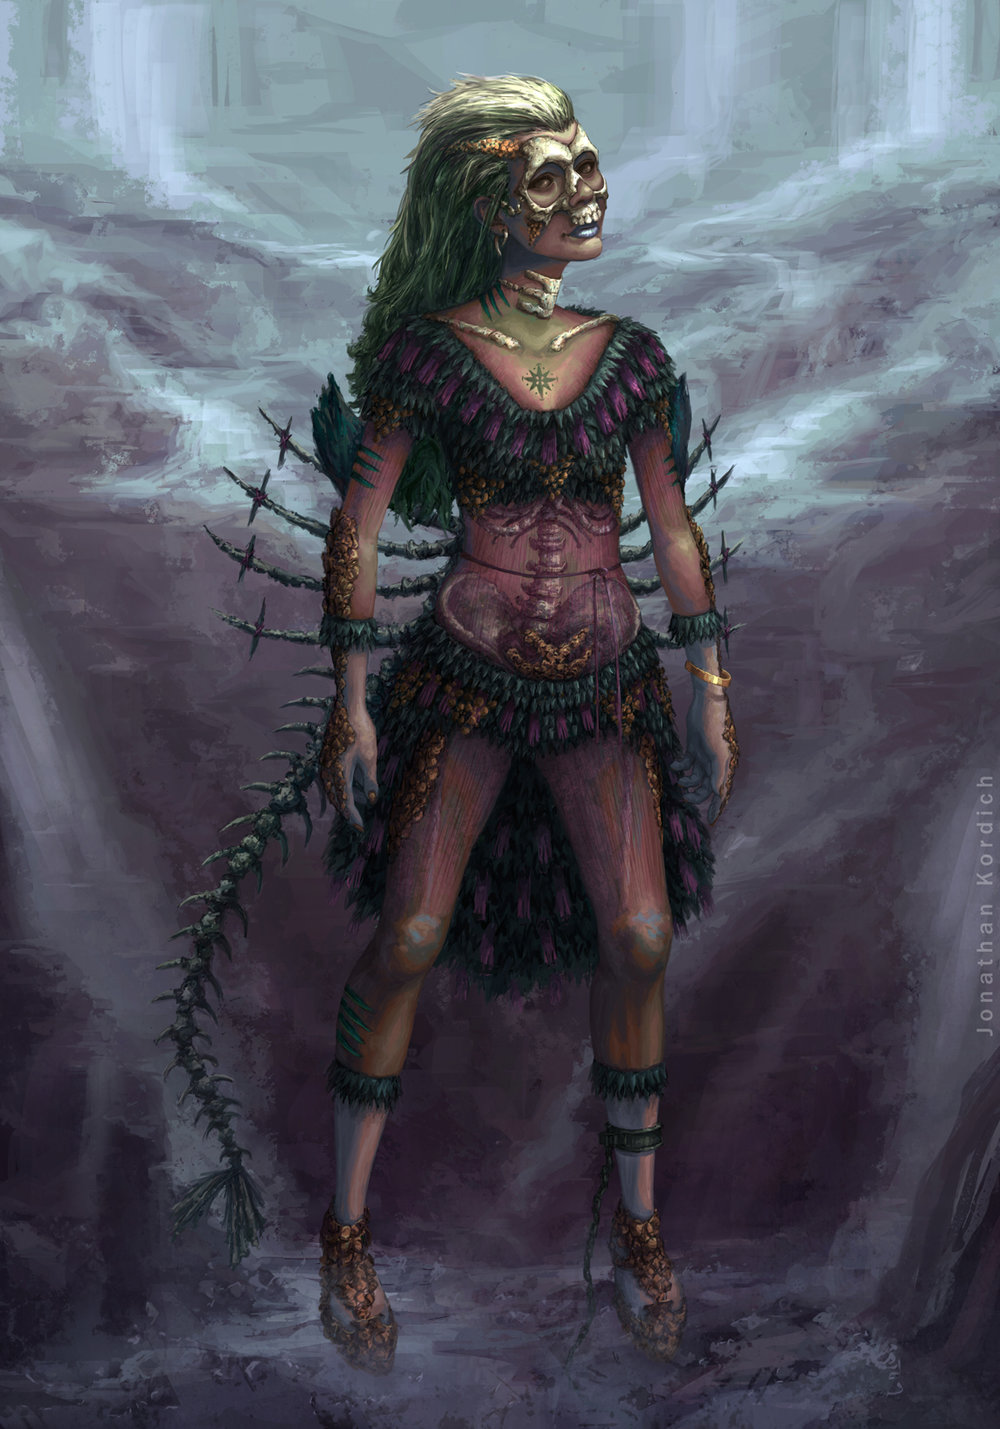 An undead nereid, with ribcage and hipbones exposed, hovers at the foot of a cave's stream.